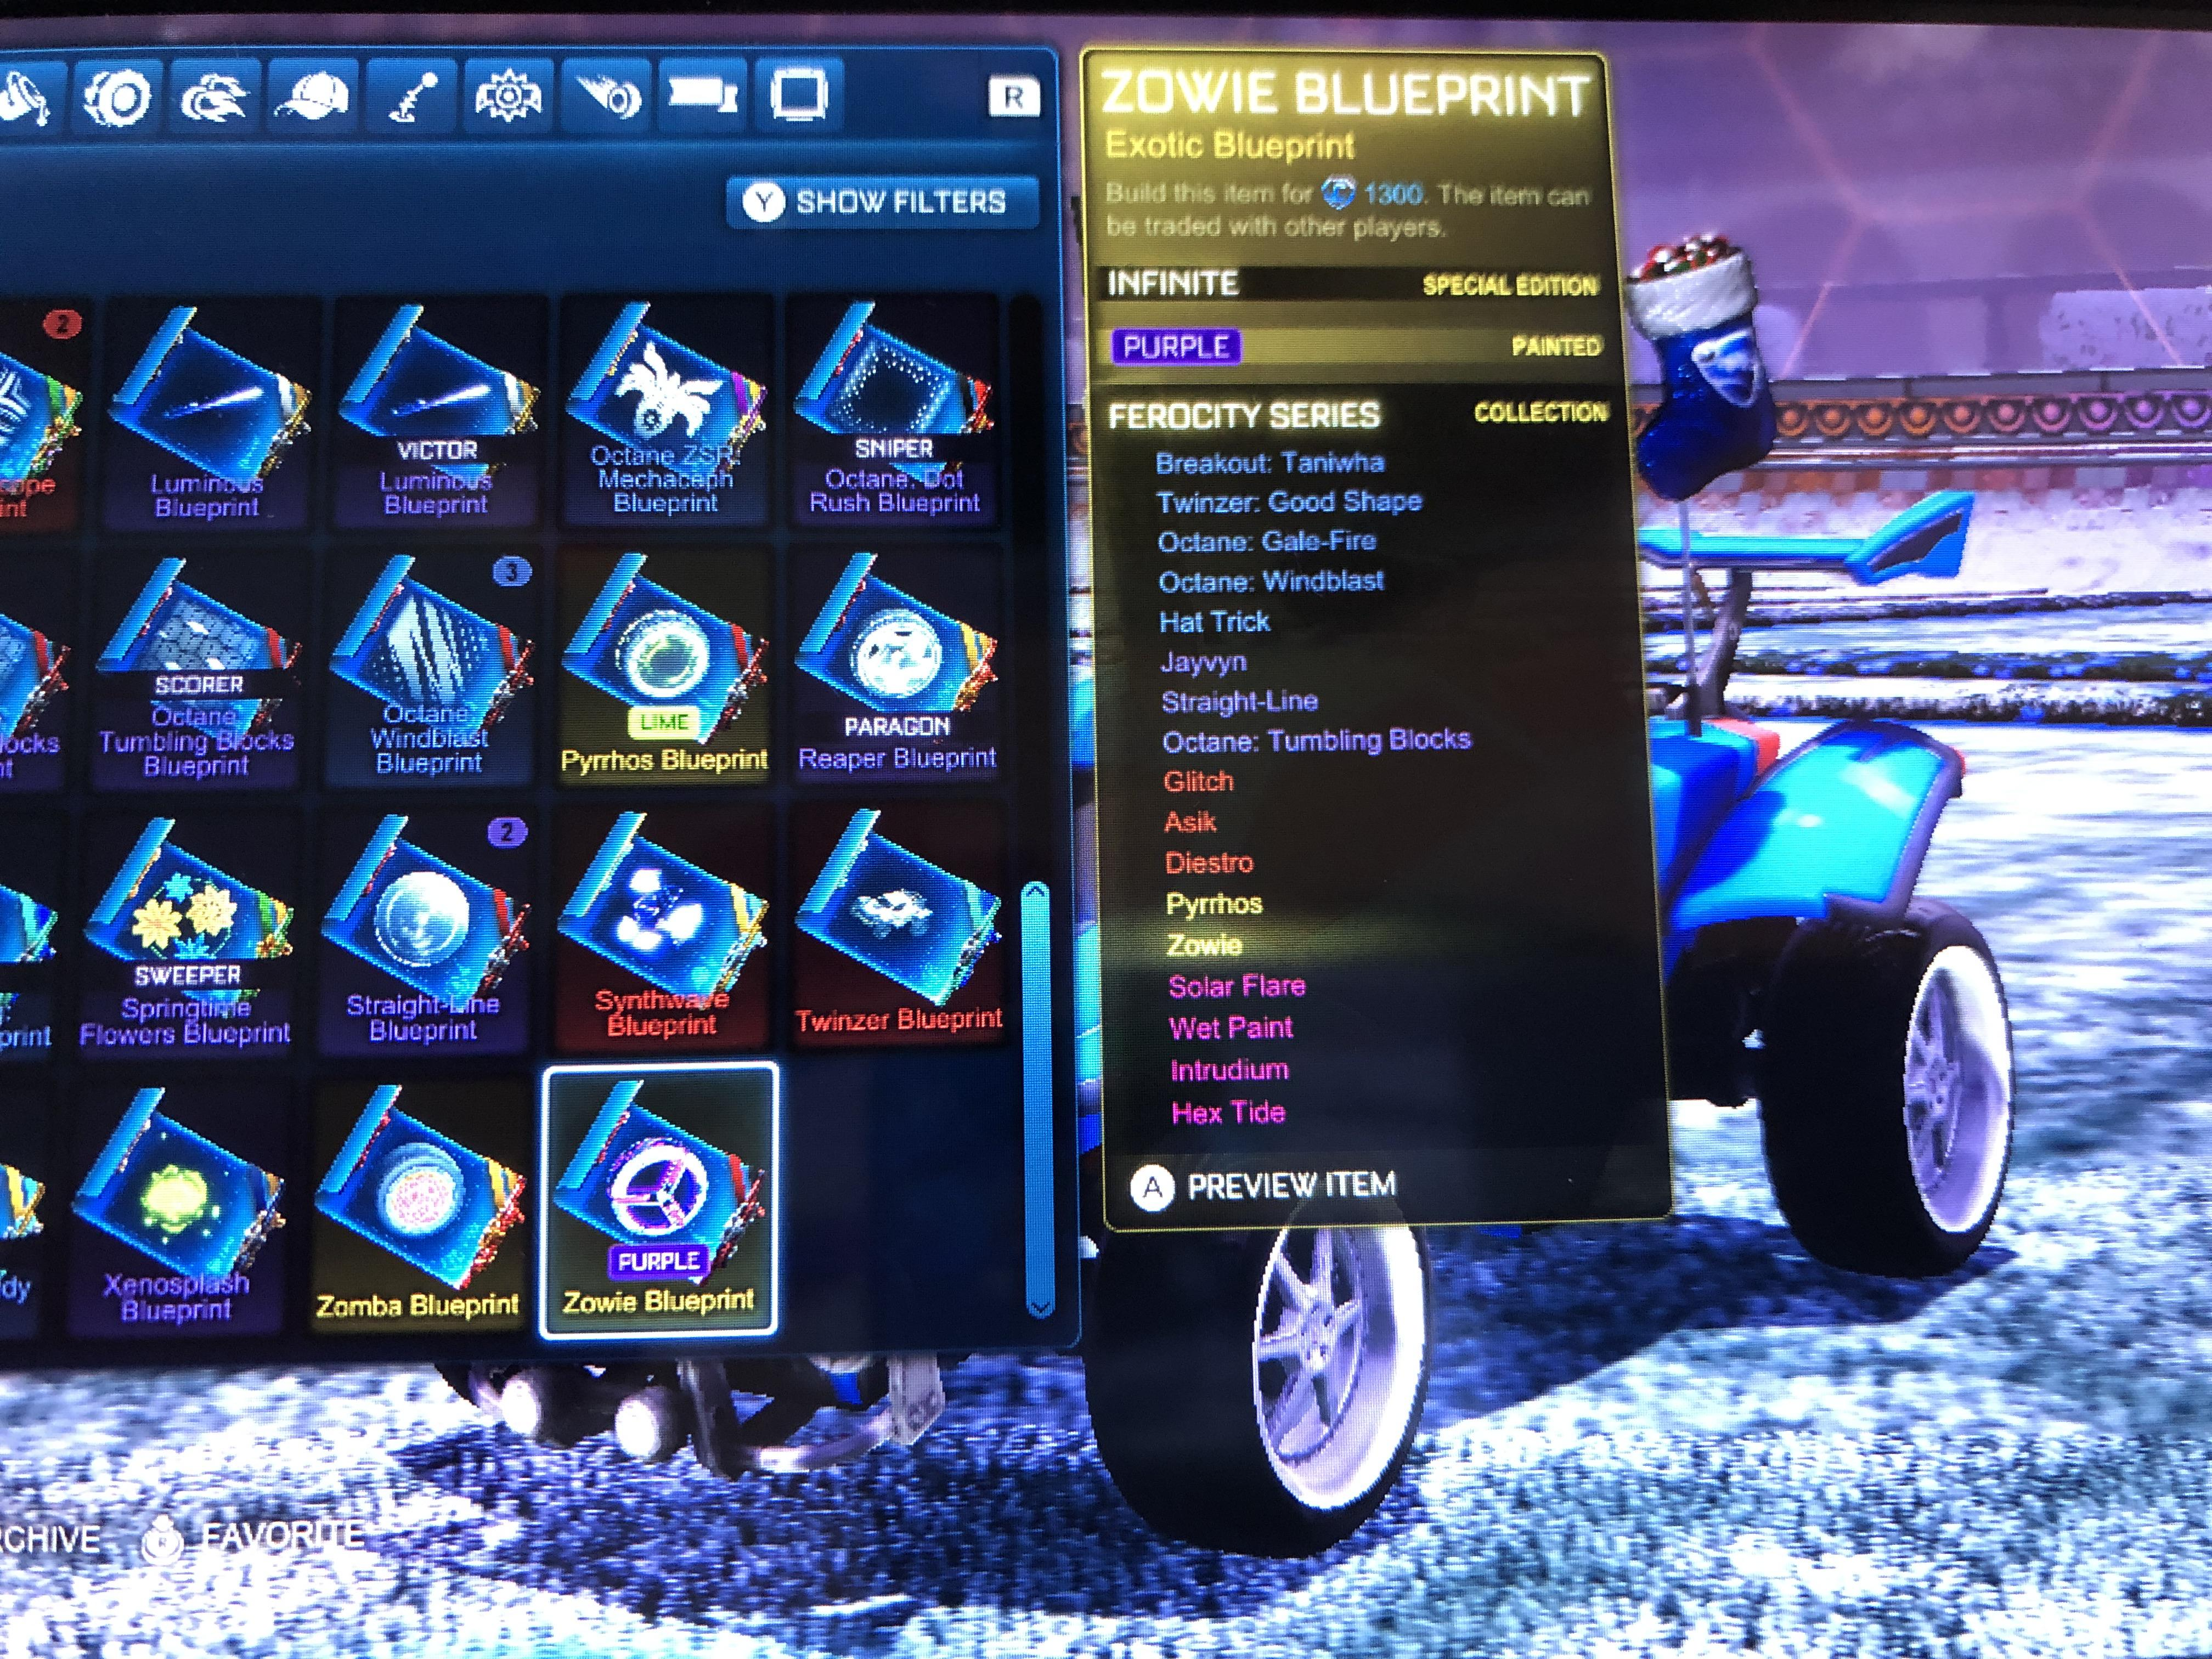 What Does Infinite And Special Edition Mean On These Rocketleague